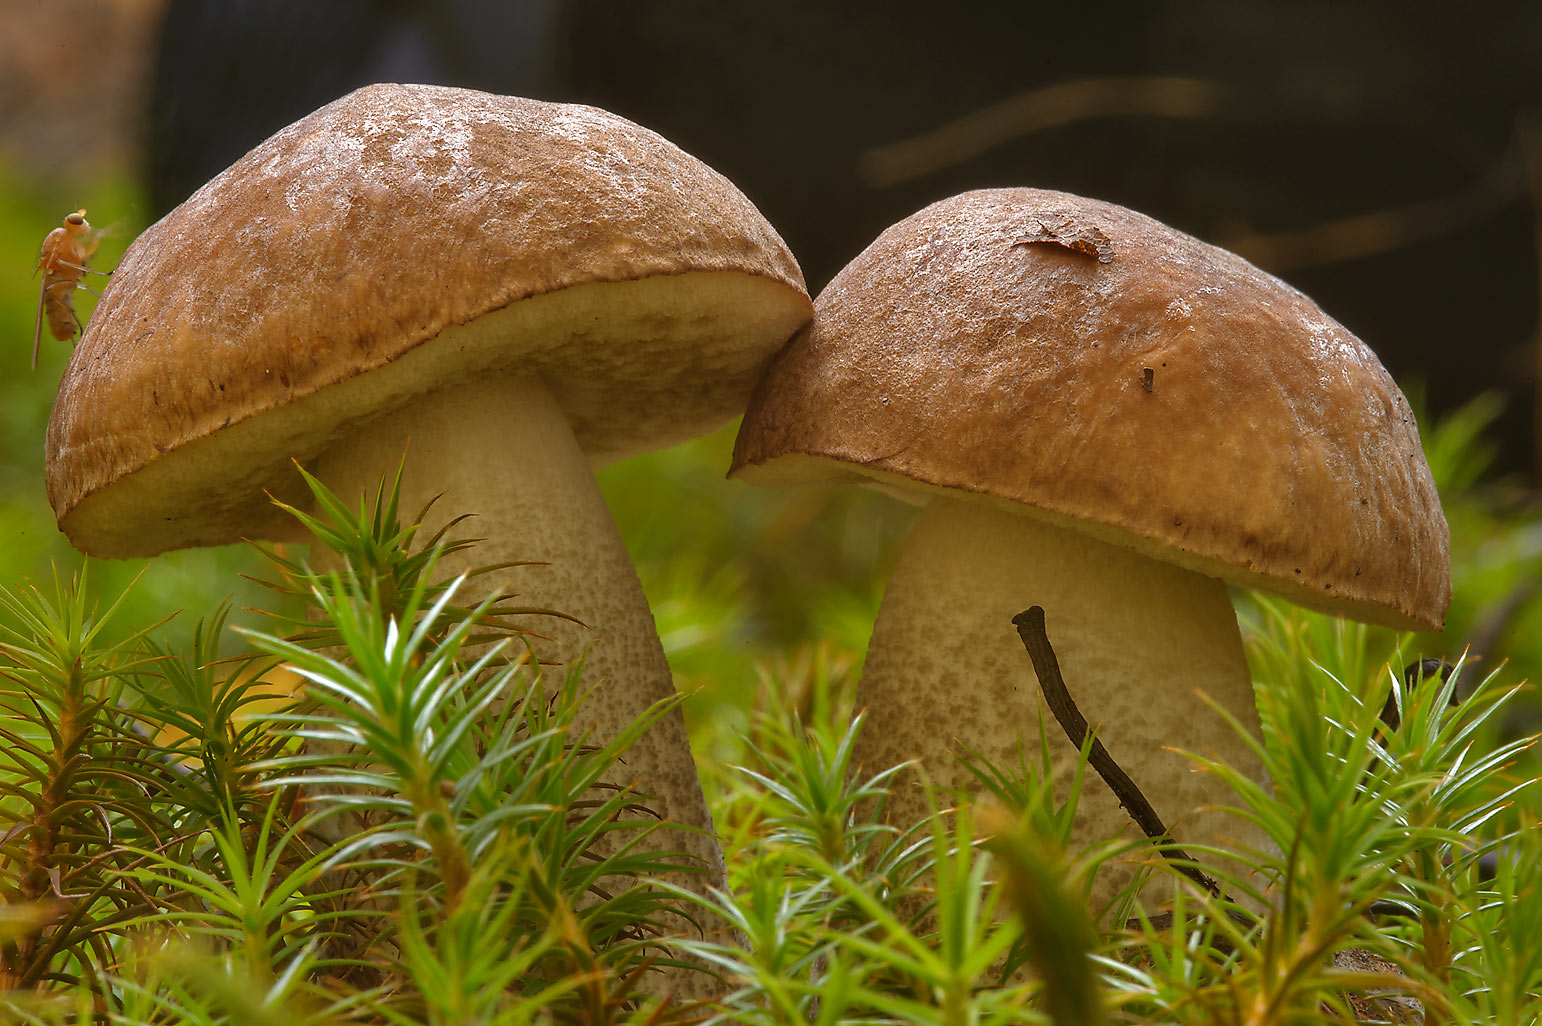 Pair of birch bolete mushrooms (Boletus Scaber...Mon Repos) Park. Vyborg, Russia